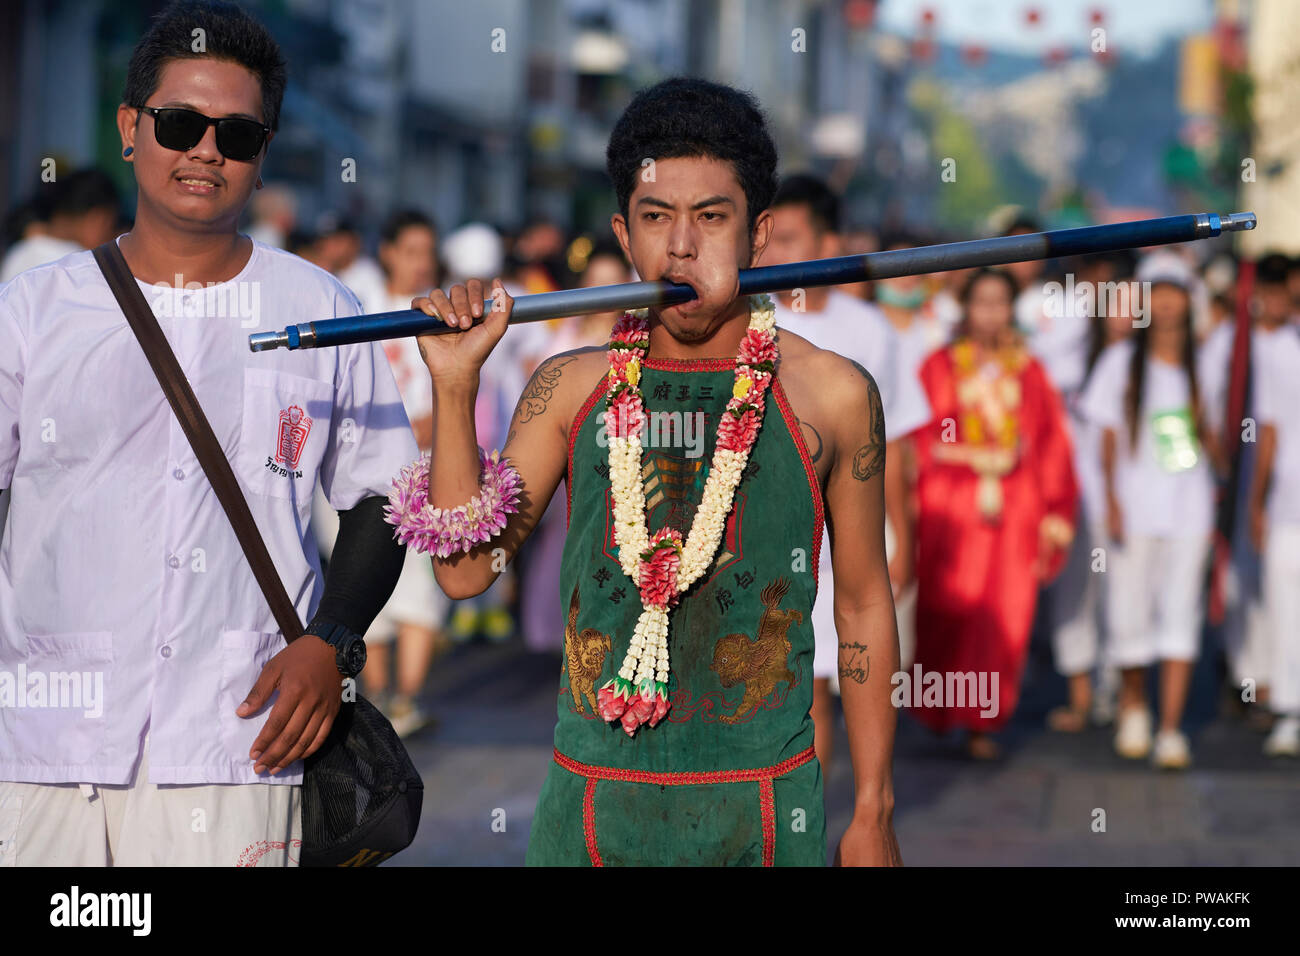 A spirit medium with his cheek pierced as part of the rituals during the Vegetarian Festival in Phuket, Thailand, in procession through Phang-Nga Rd. - Stock Image